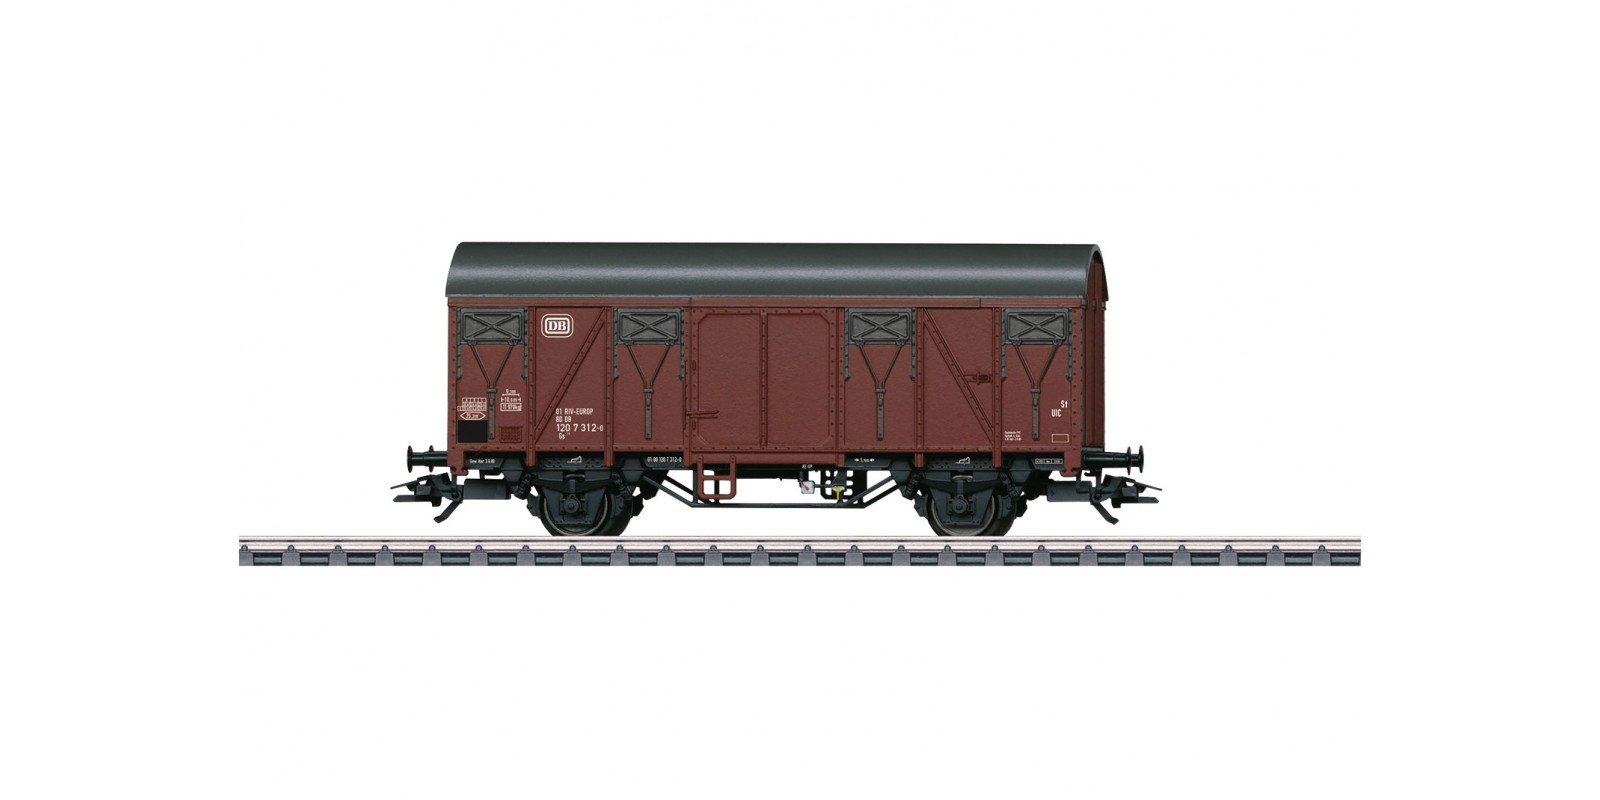 44500 Type Gs 210 Boxcar